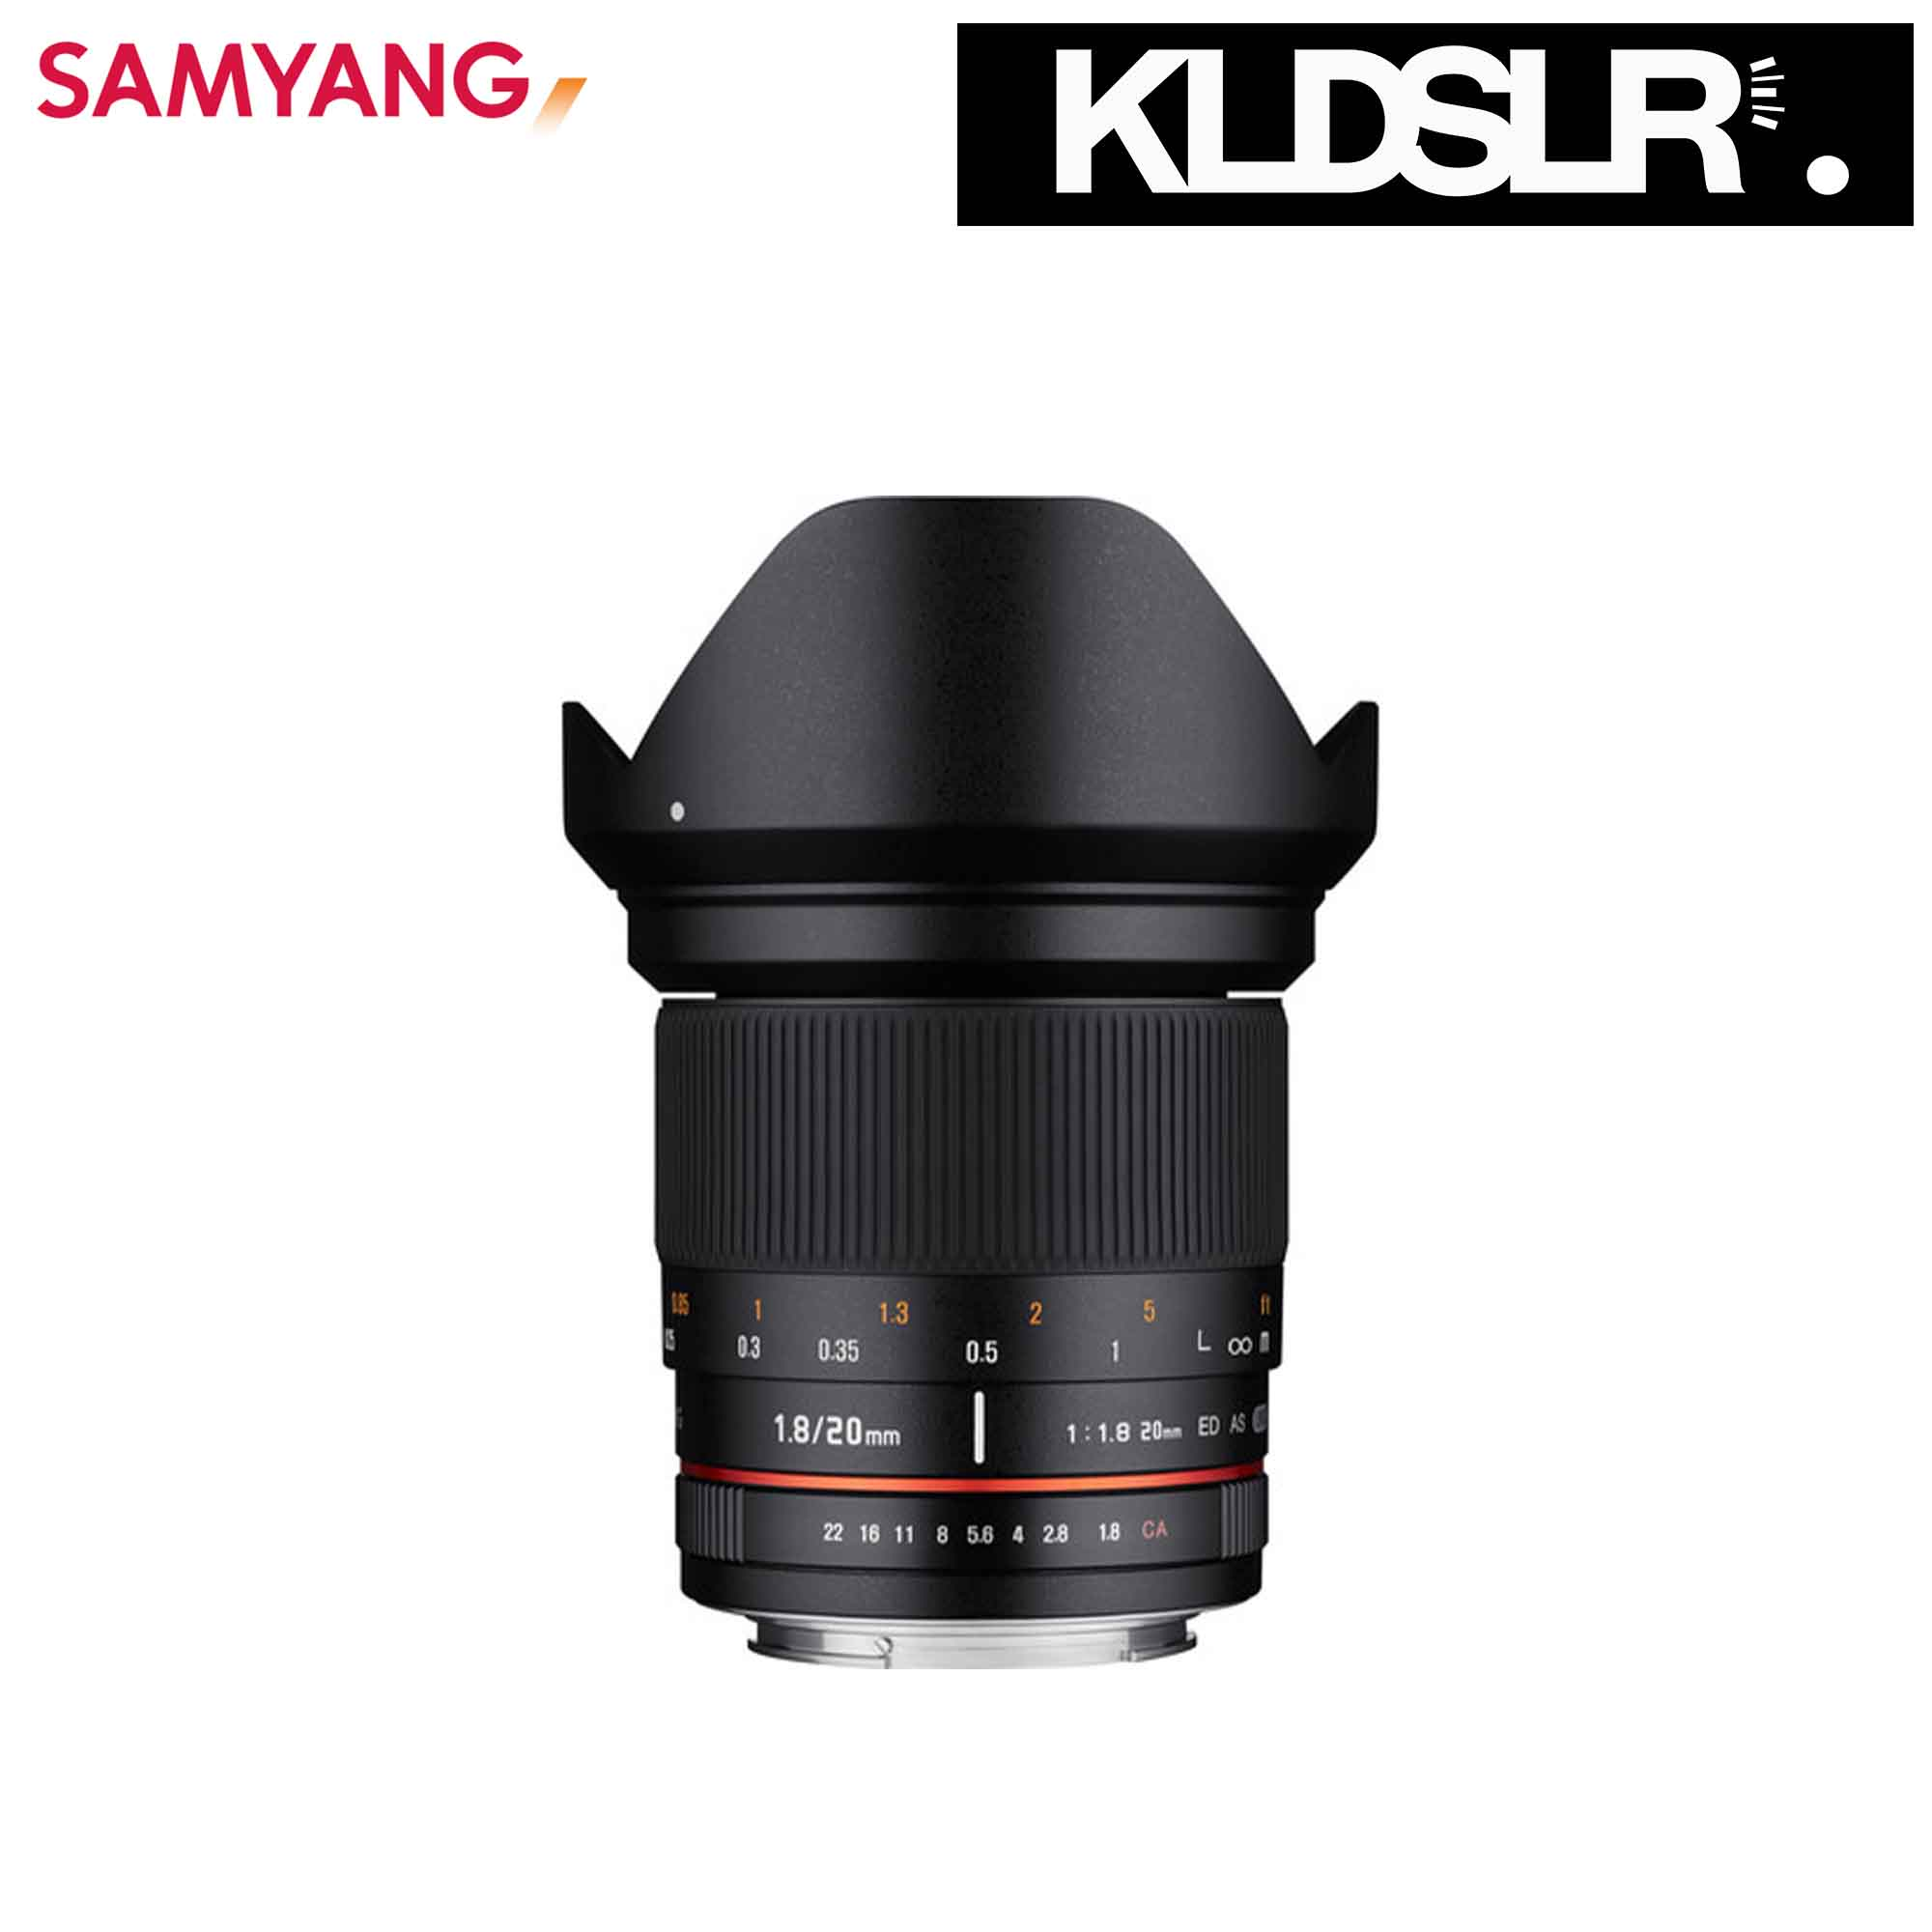 06 Samyang 20mm f1.8 ED AS UMC Lens for Fuji X